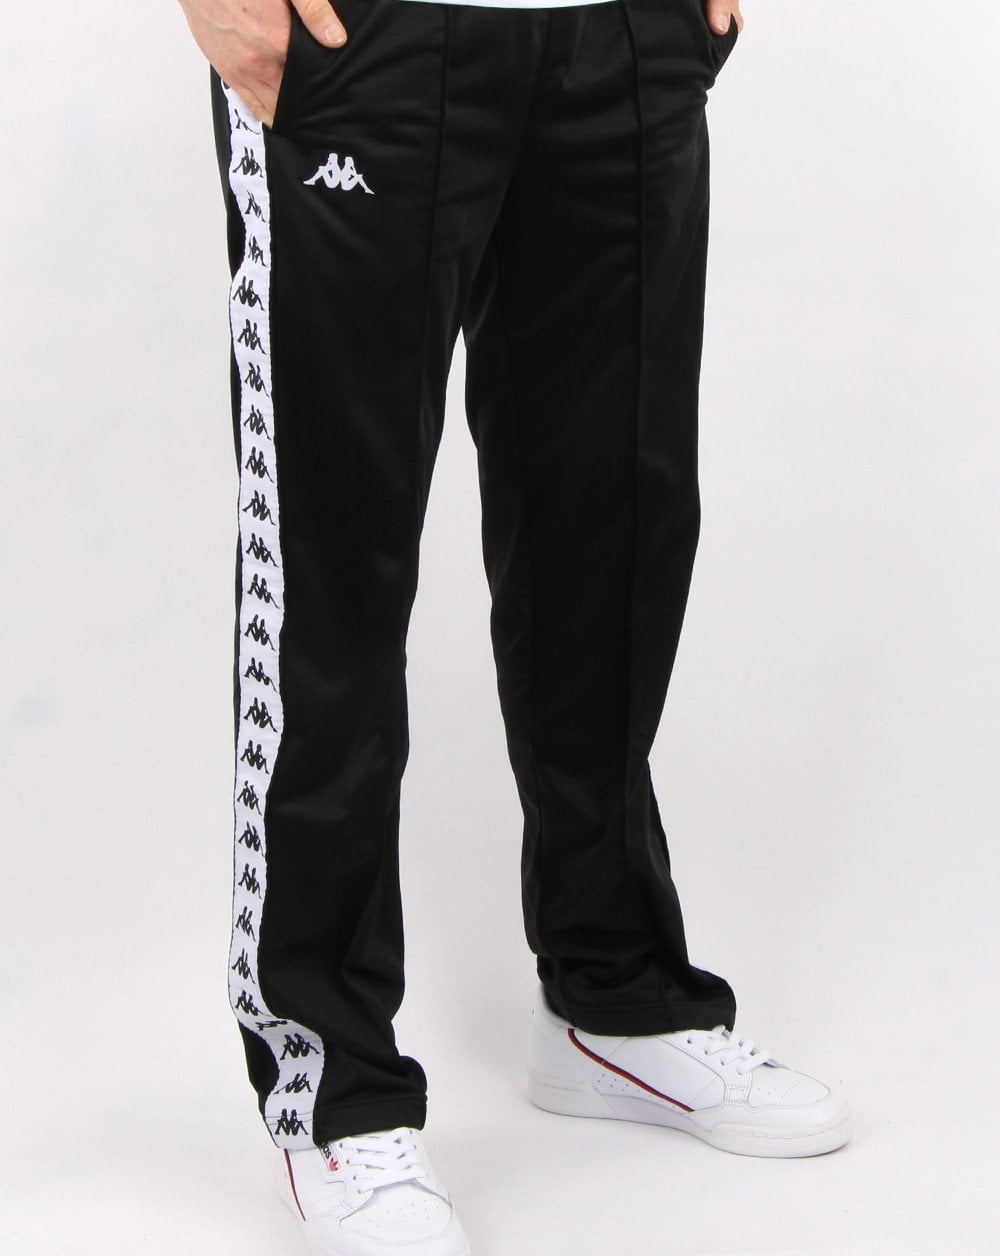 d67cbd09f1 Kappa Astoria Track Pants Black/white | 80s casual classics